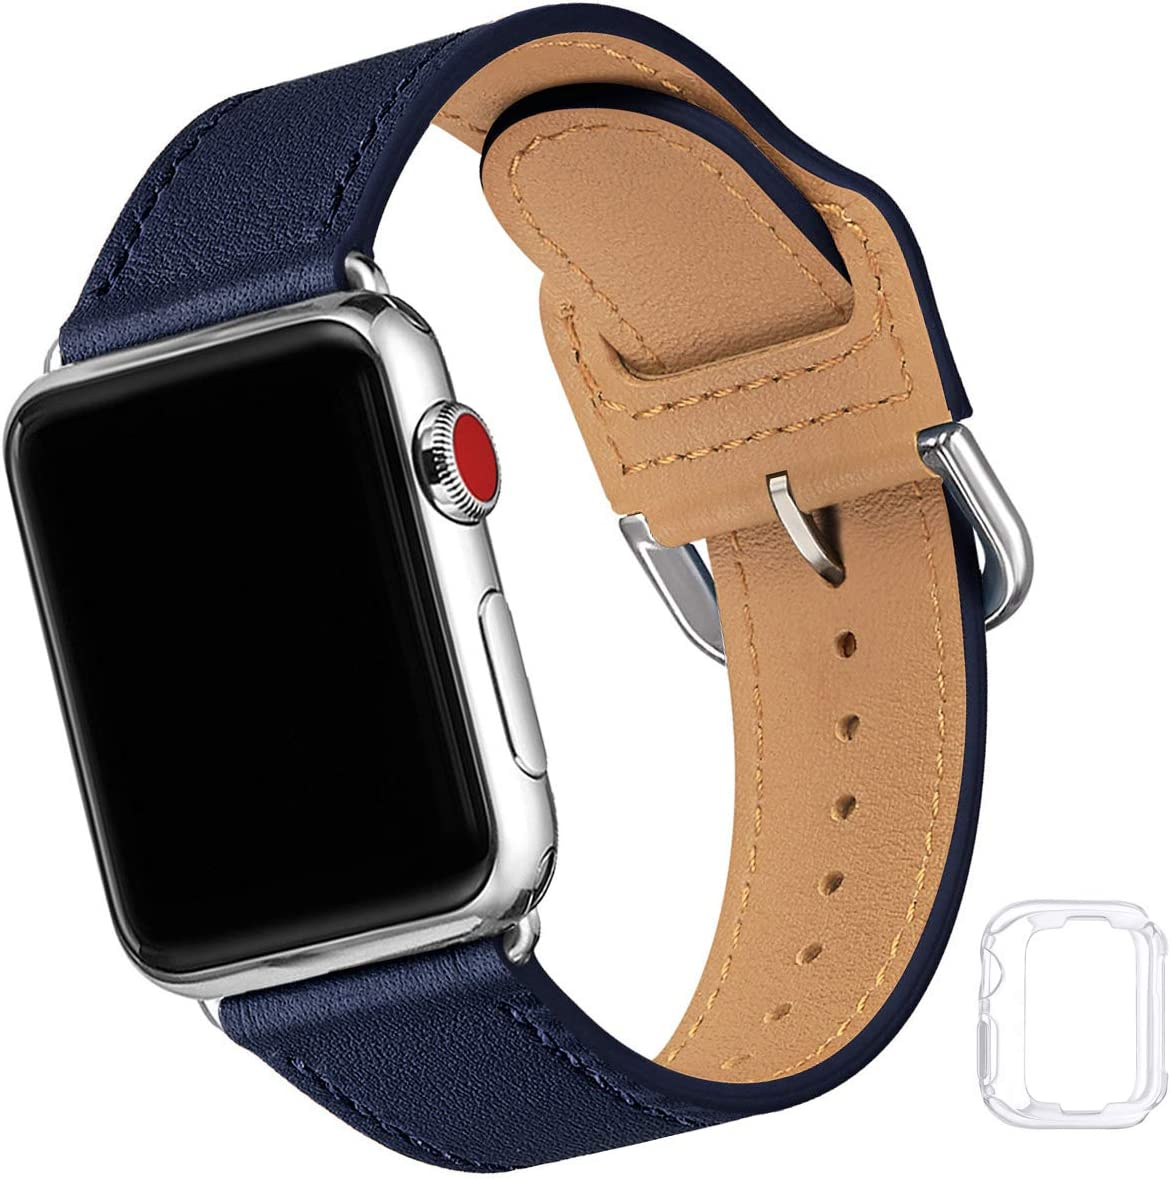 Compatible with Apple Watch Band 38mm 40mm 42mm 44mm, Soft Leather Watch Band Replacement Strap for iWatch Series 5 4 3 2 1 (Dark Blue with Silver, 38MM/40MM)